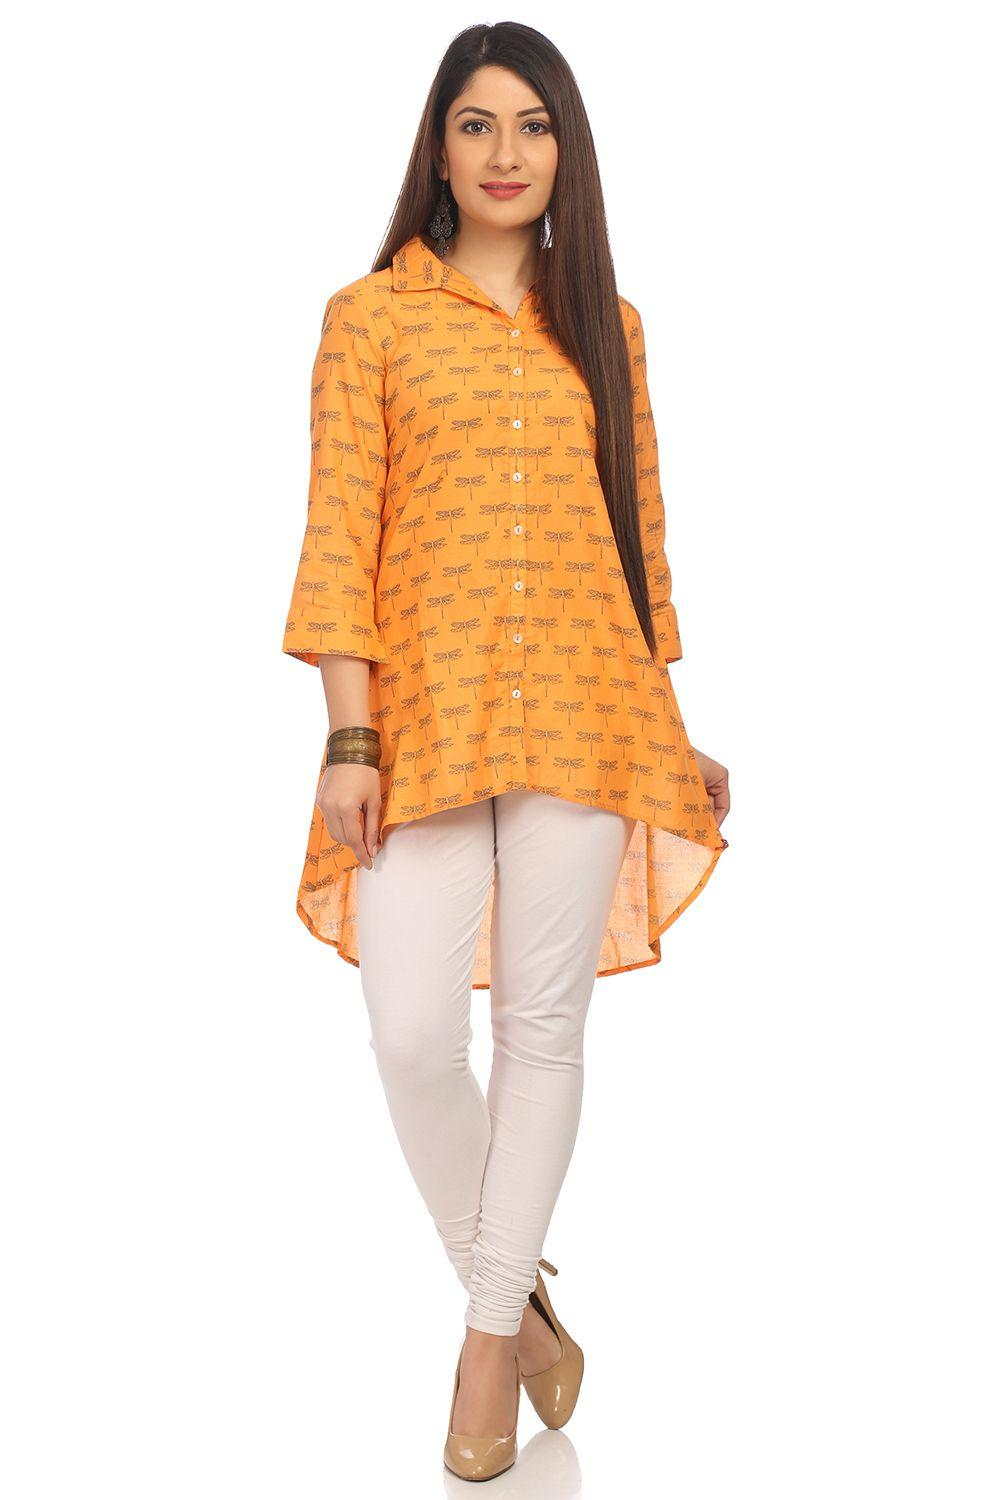 Orange A-Line High Low Cotton Tunic - CAFEPIN13934